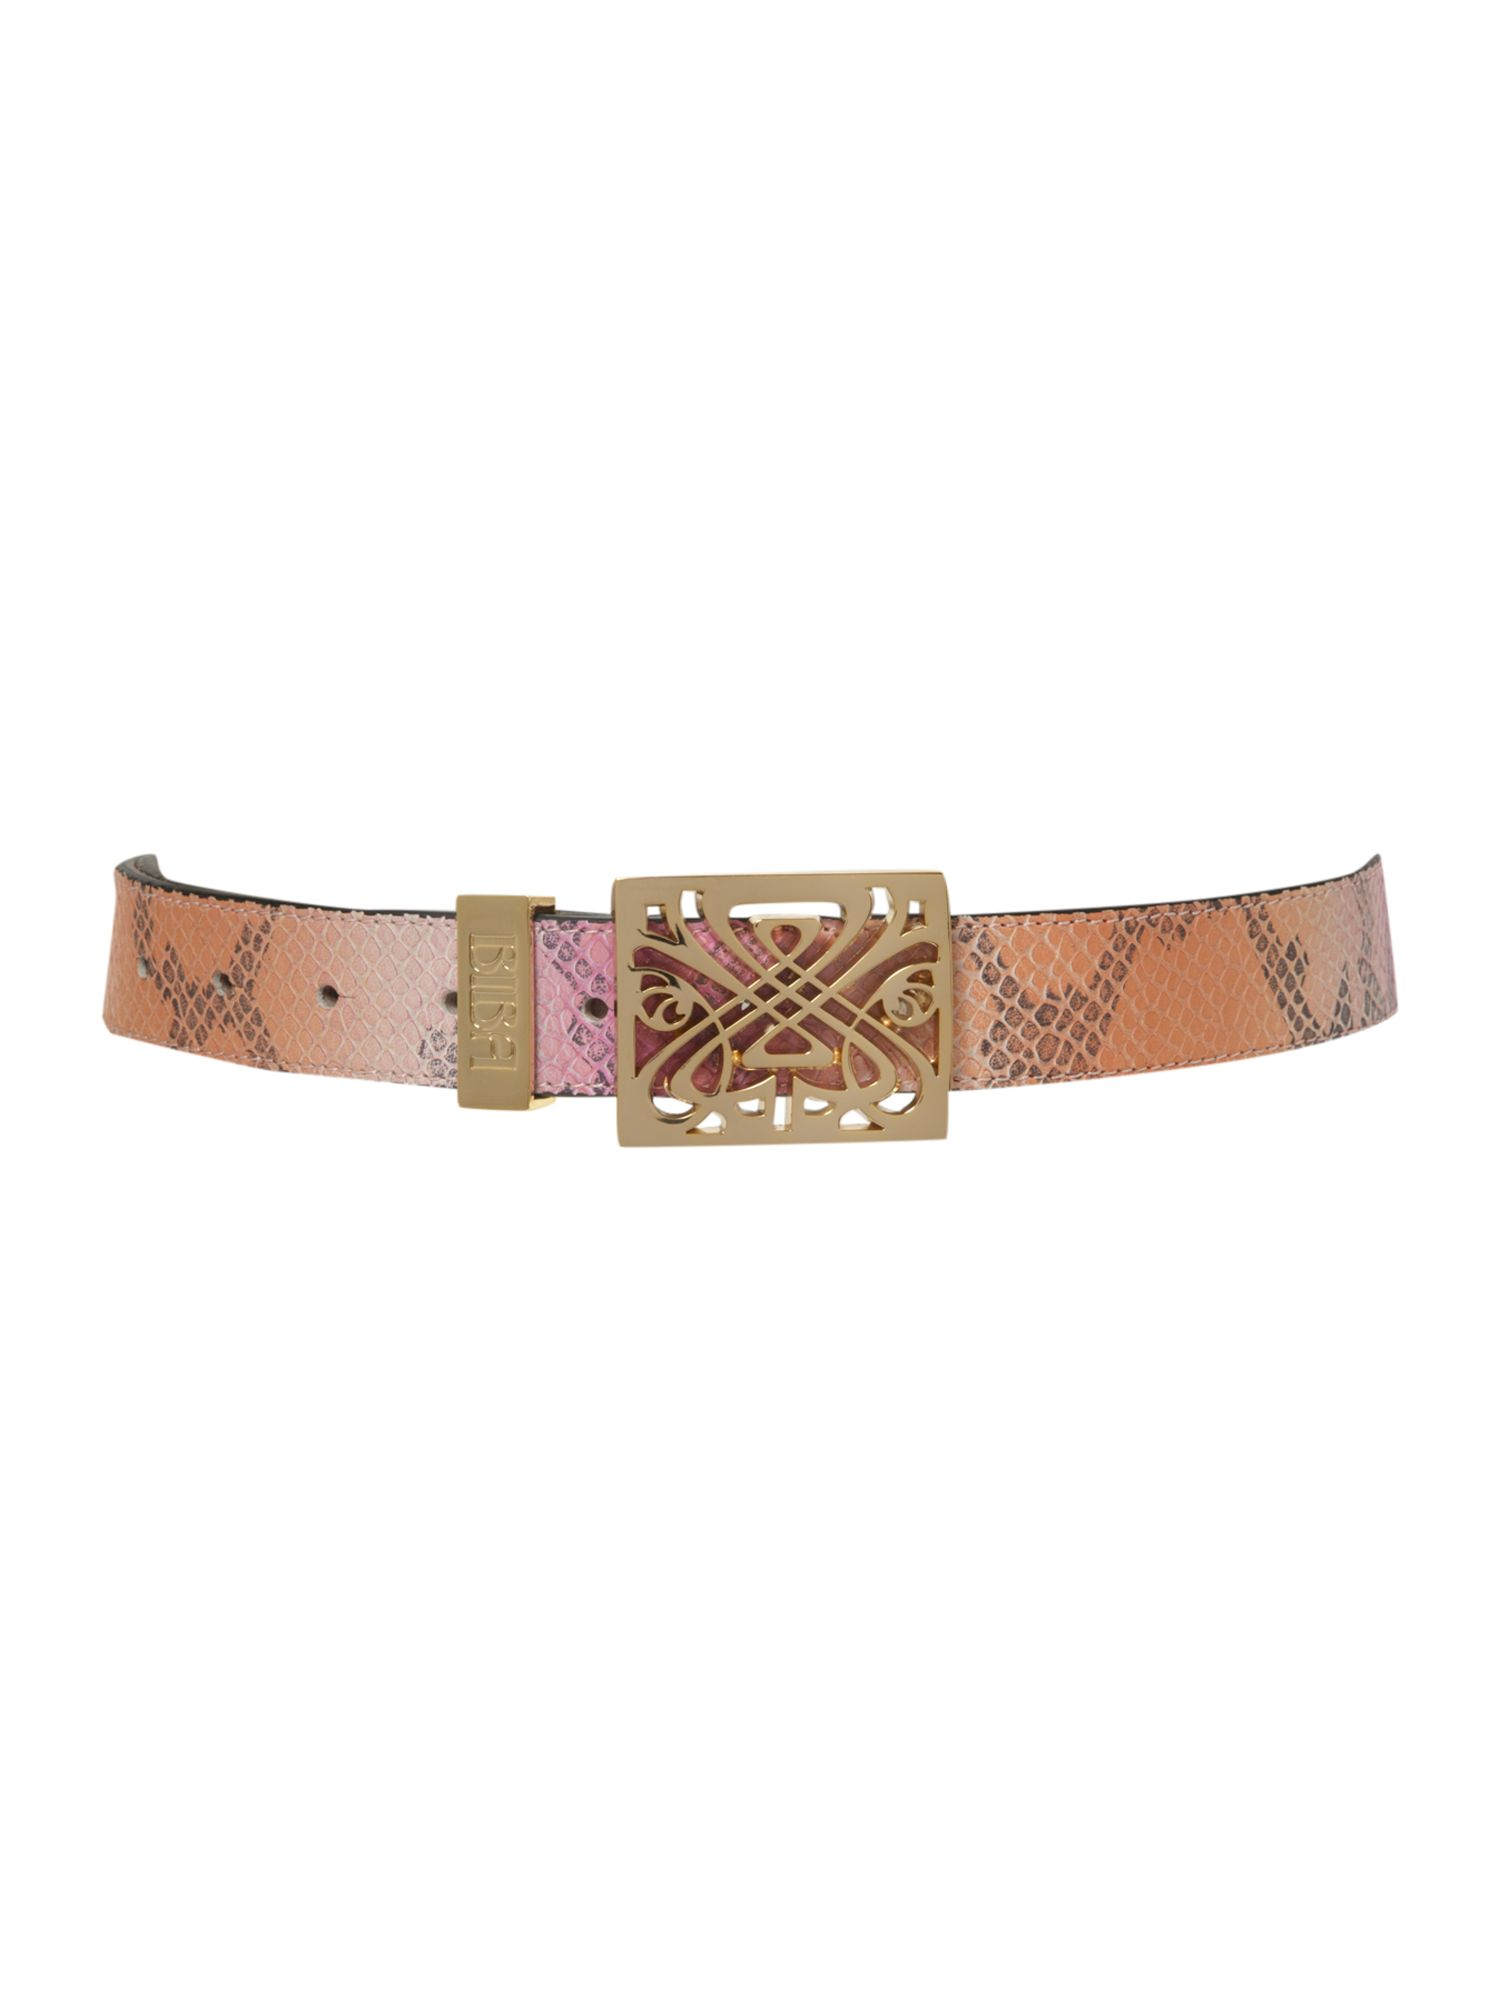 Filagree belt